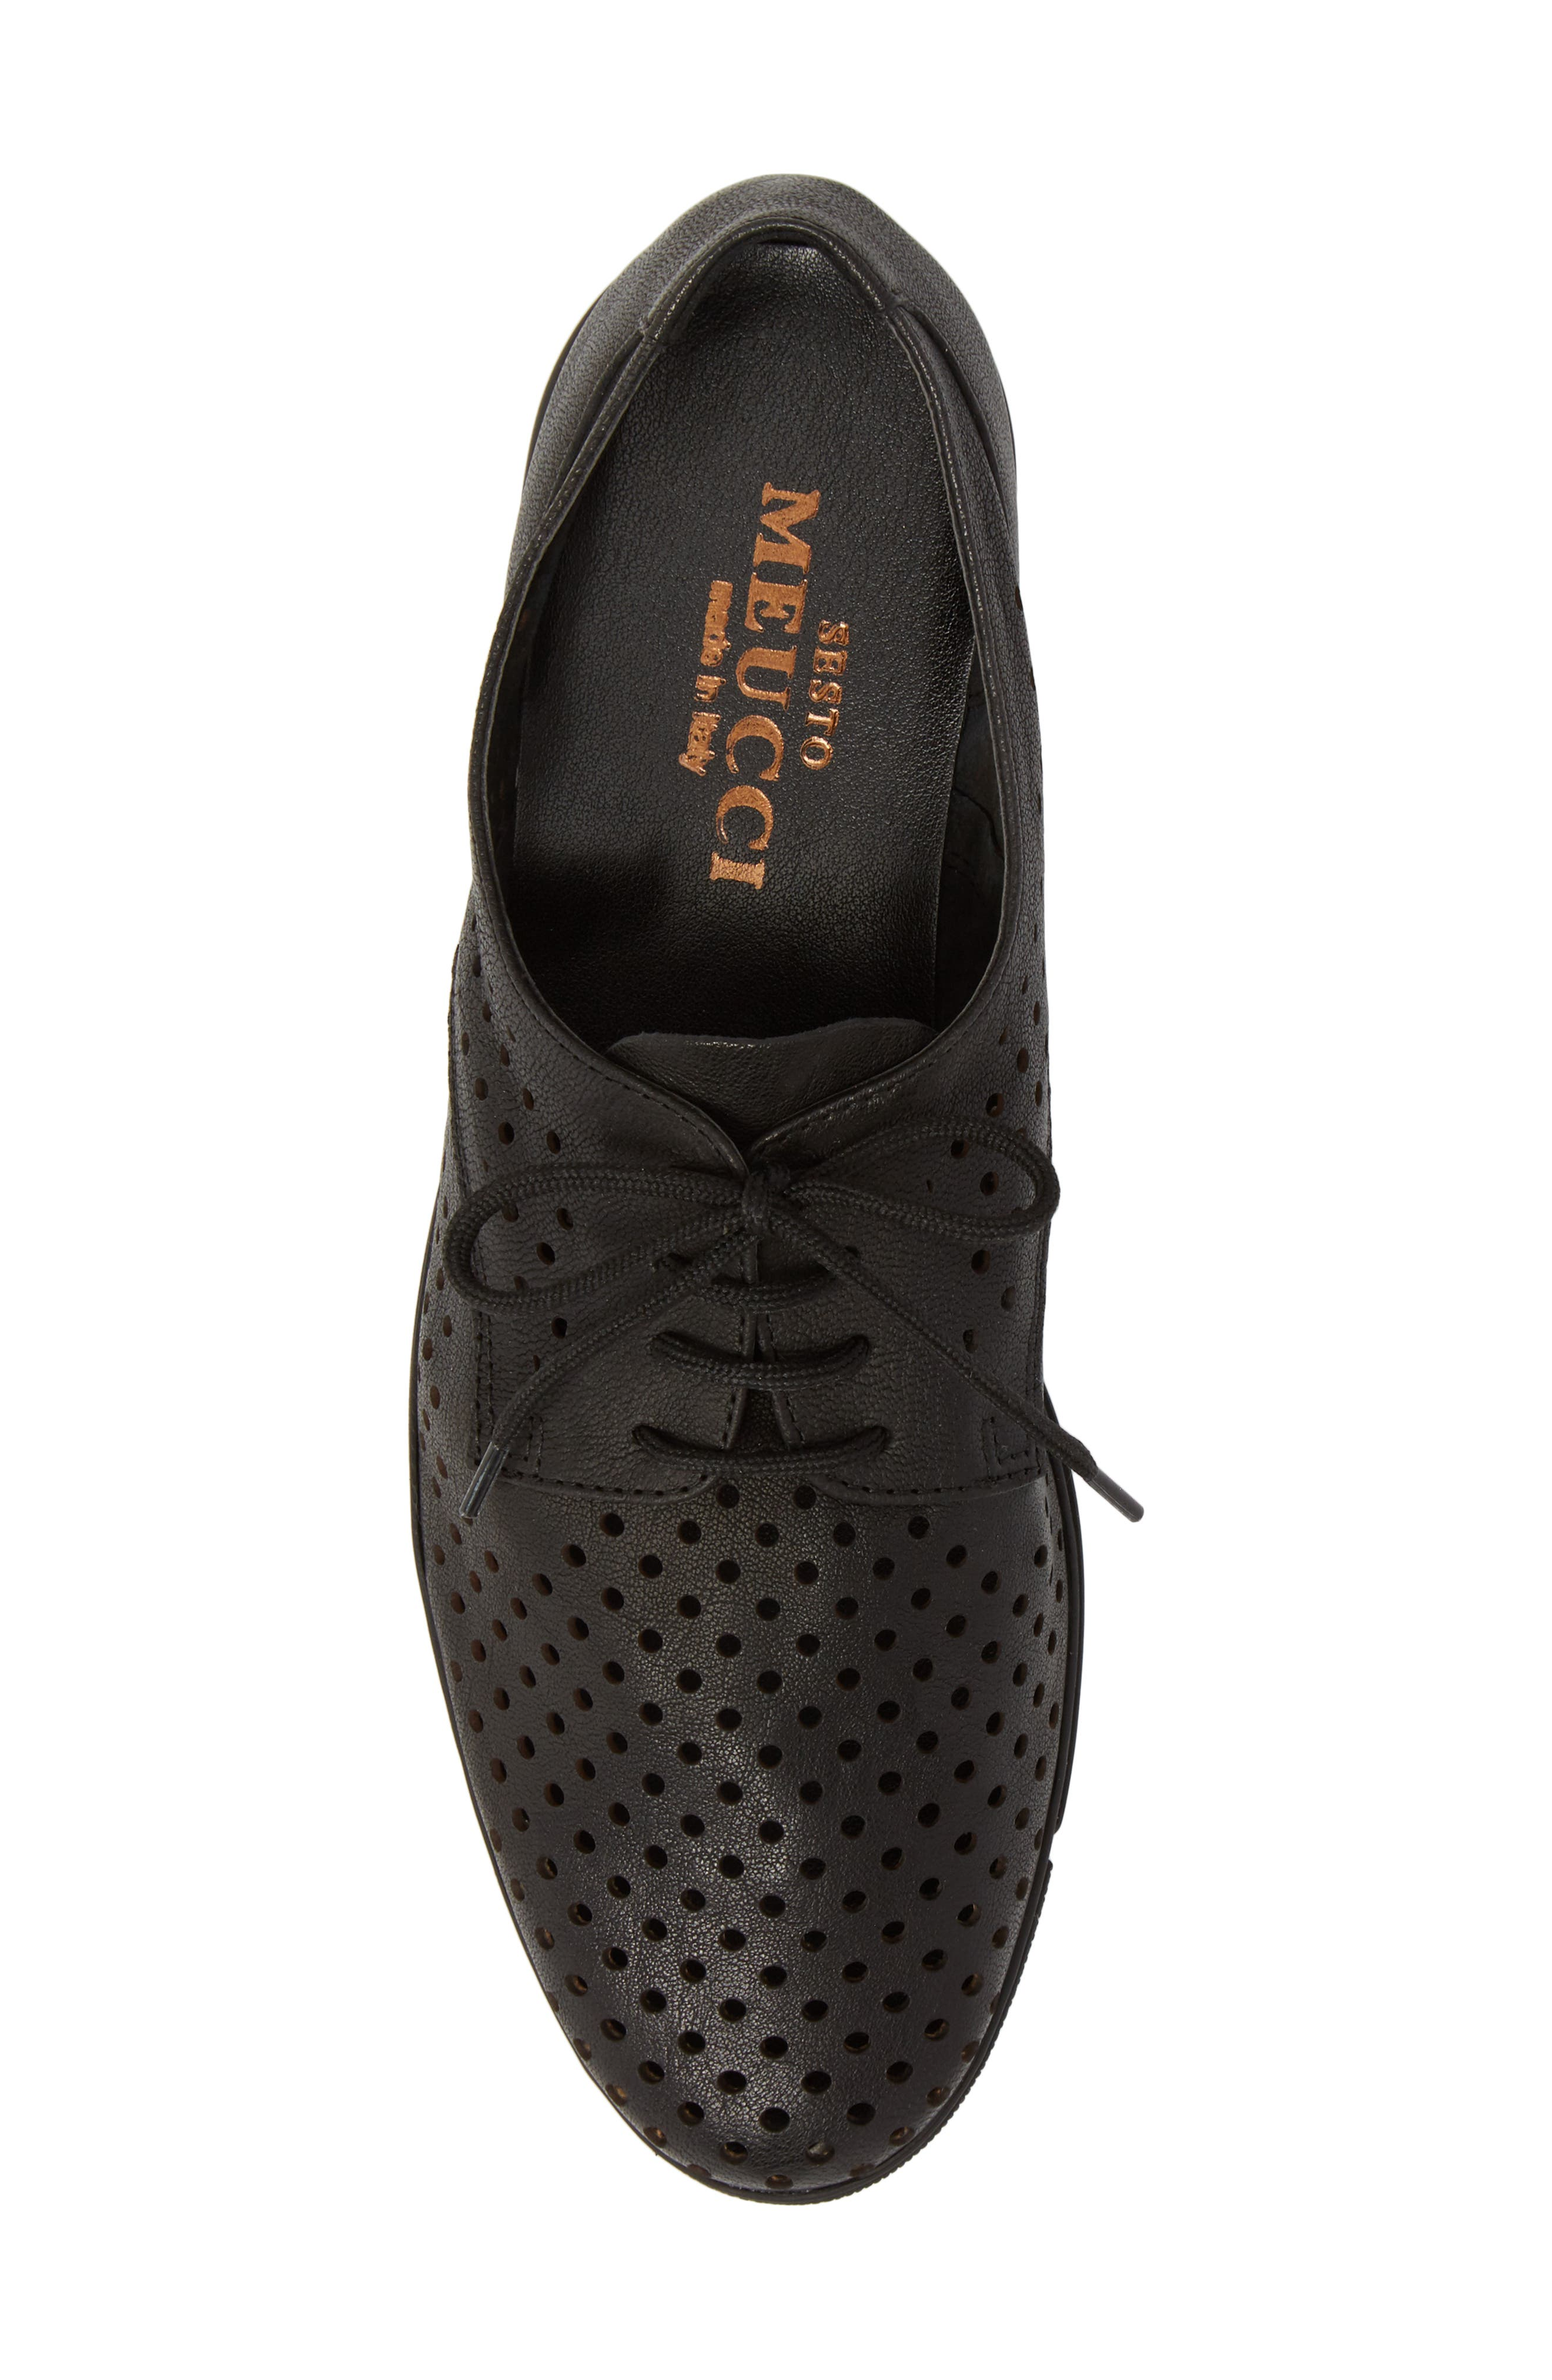 Dirce Perforated Oxford Flat,                             Alternate thumbnail 5, color,                             Black Leather